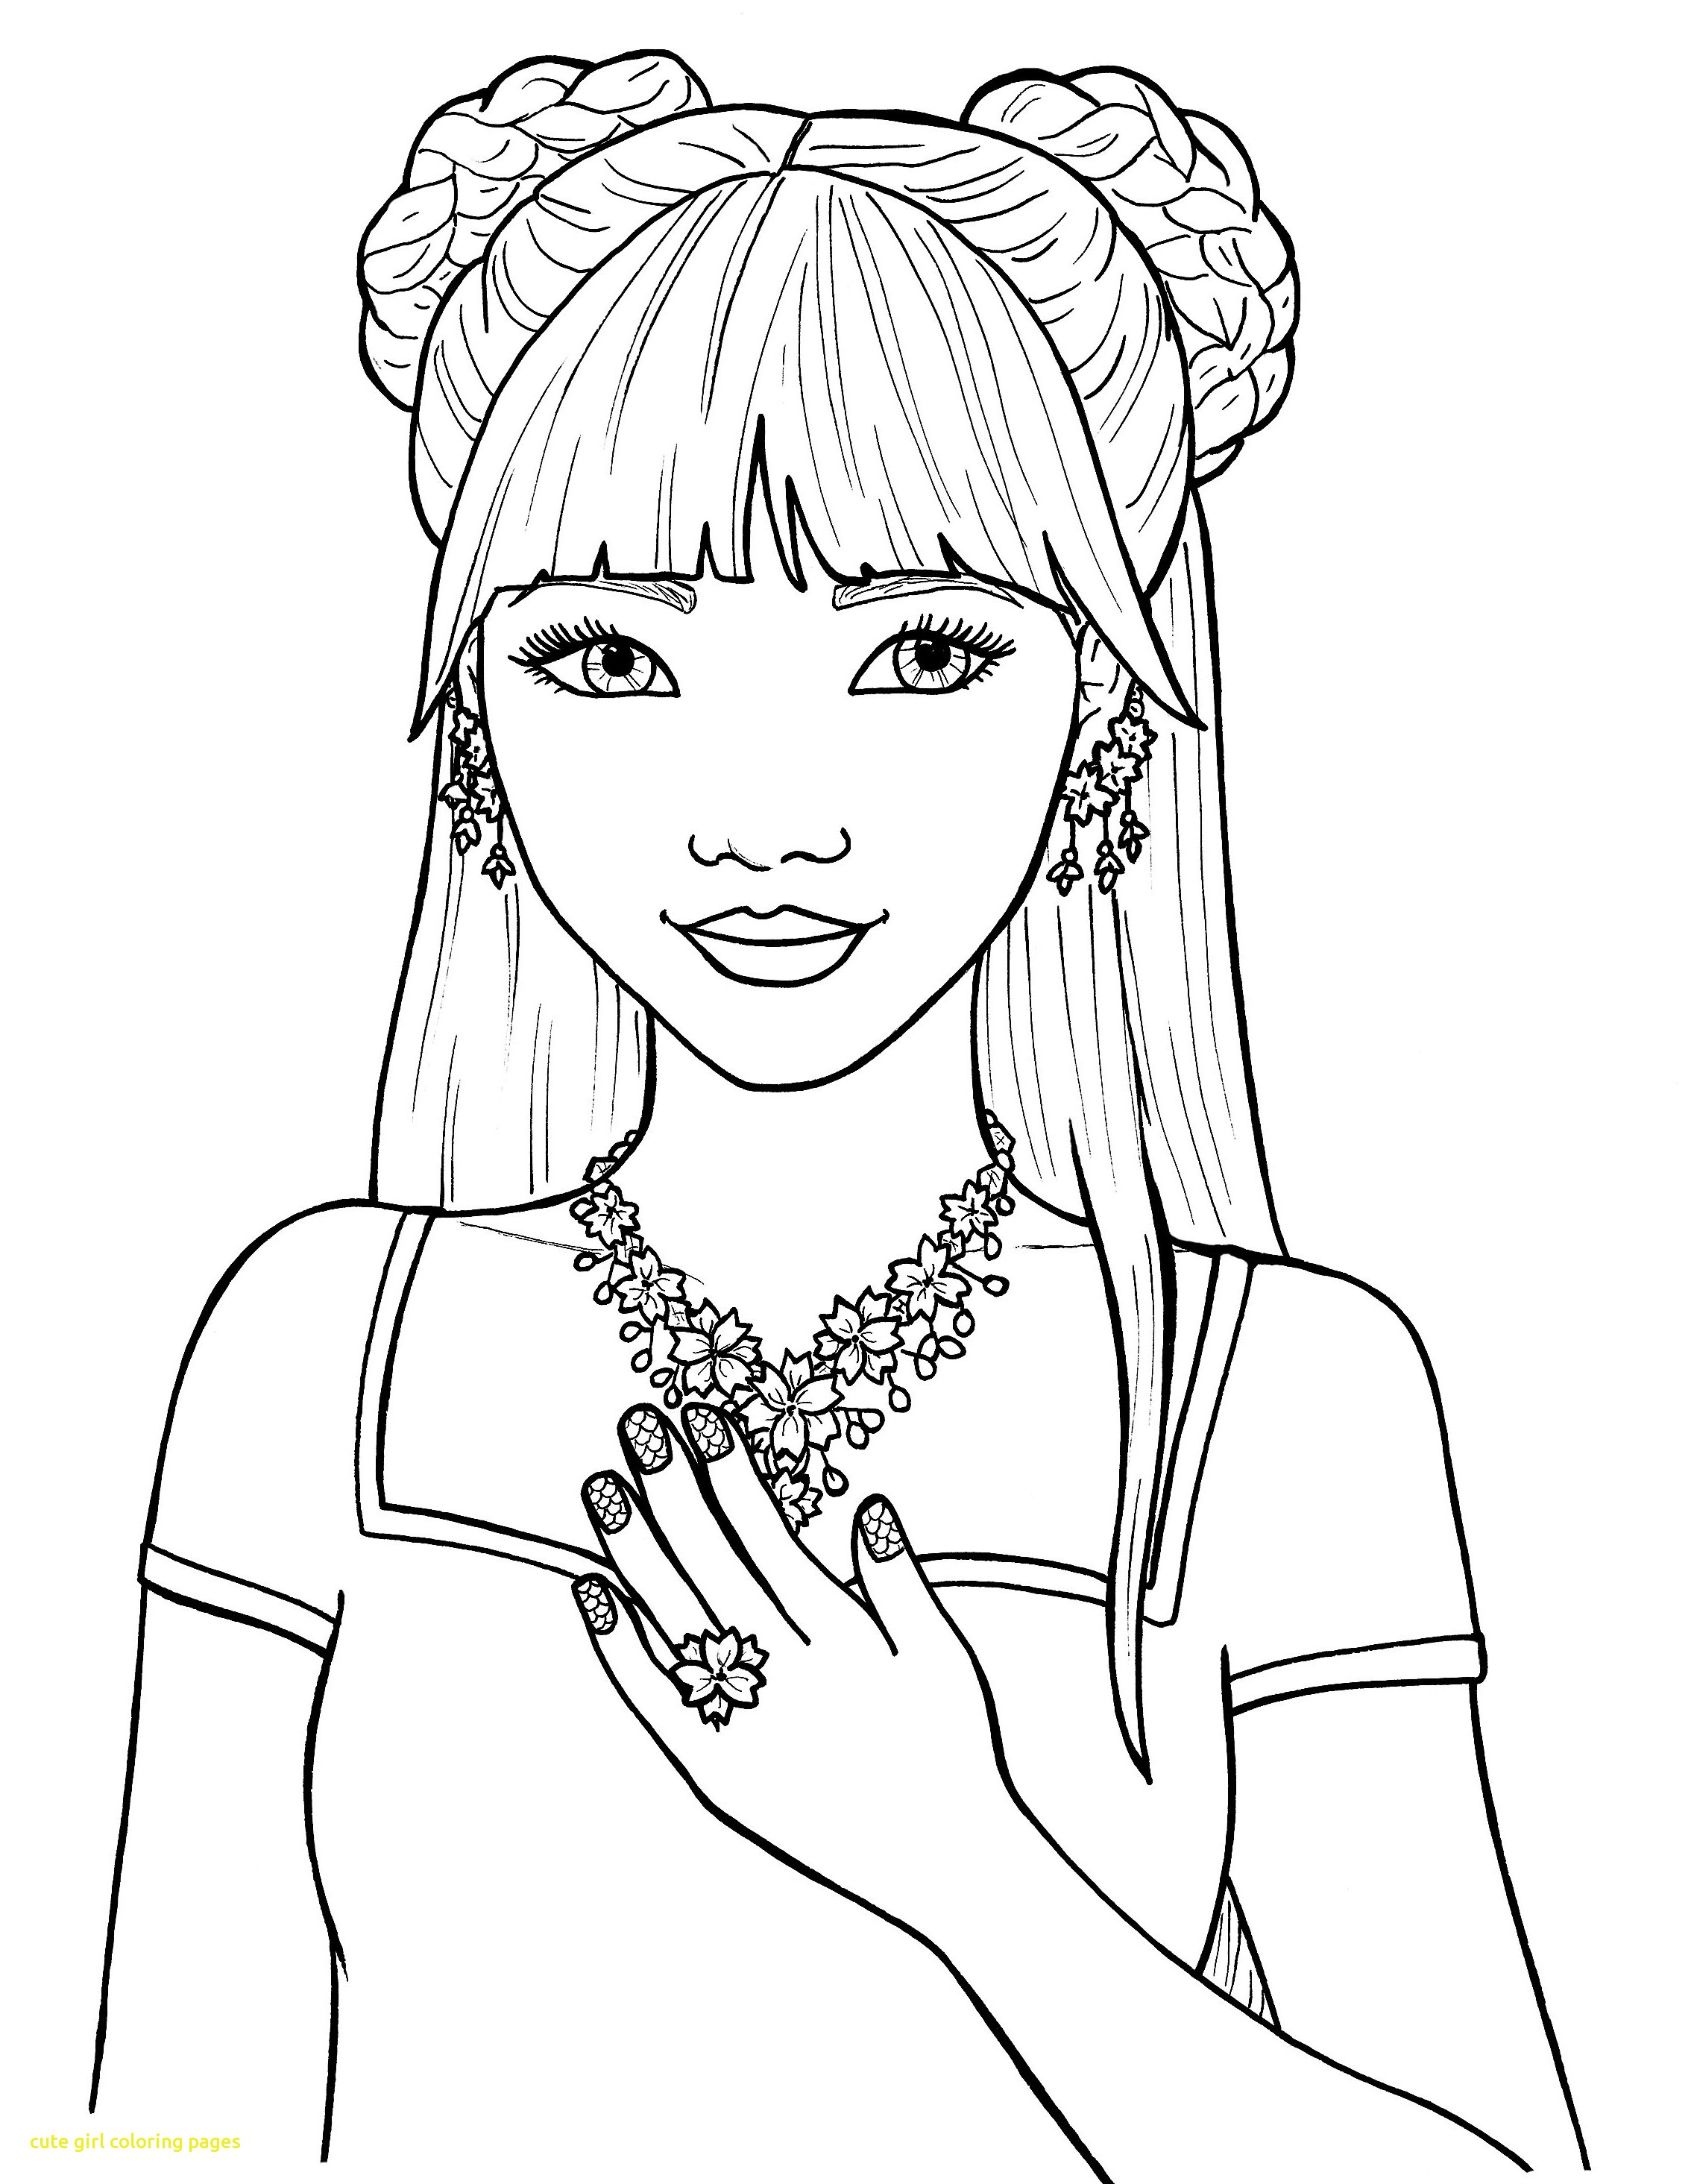 colour in pictures for girls equestria girls coloring pages best coloring pages for kids pictures in girls colour for